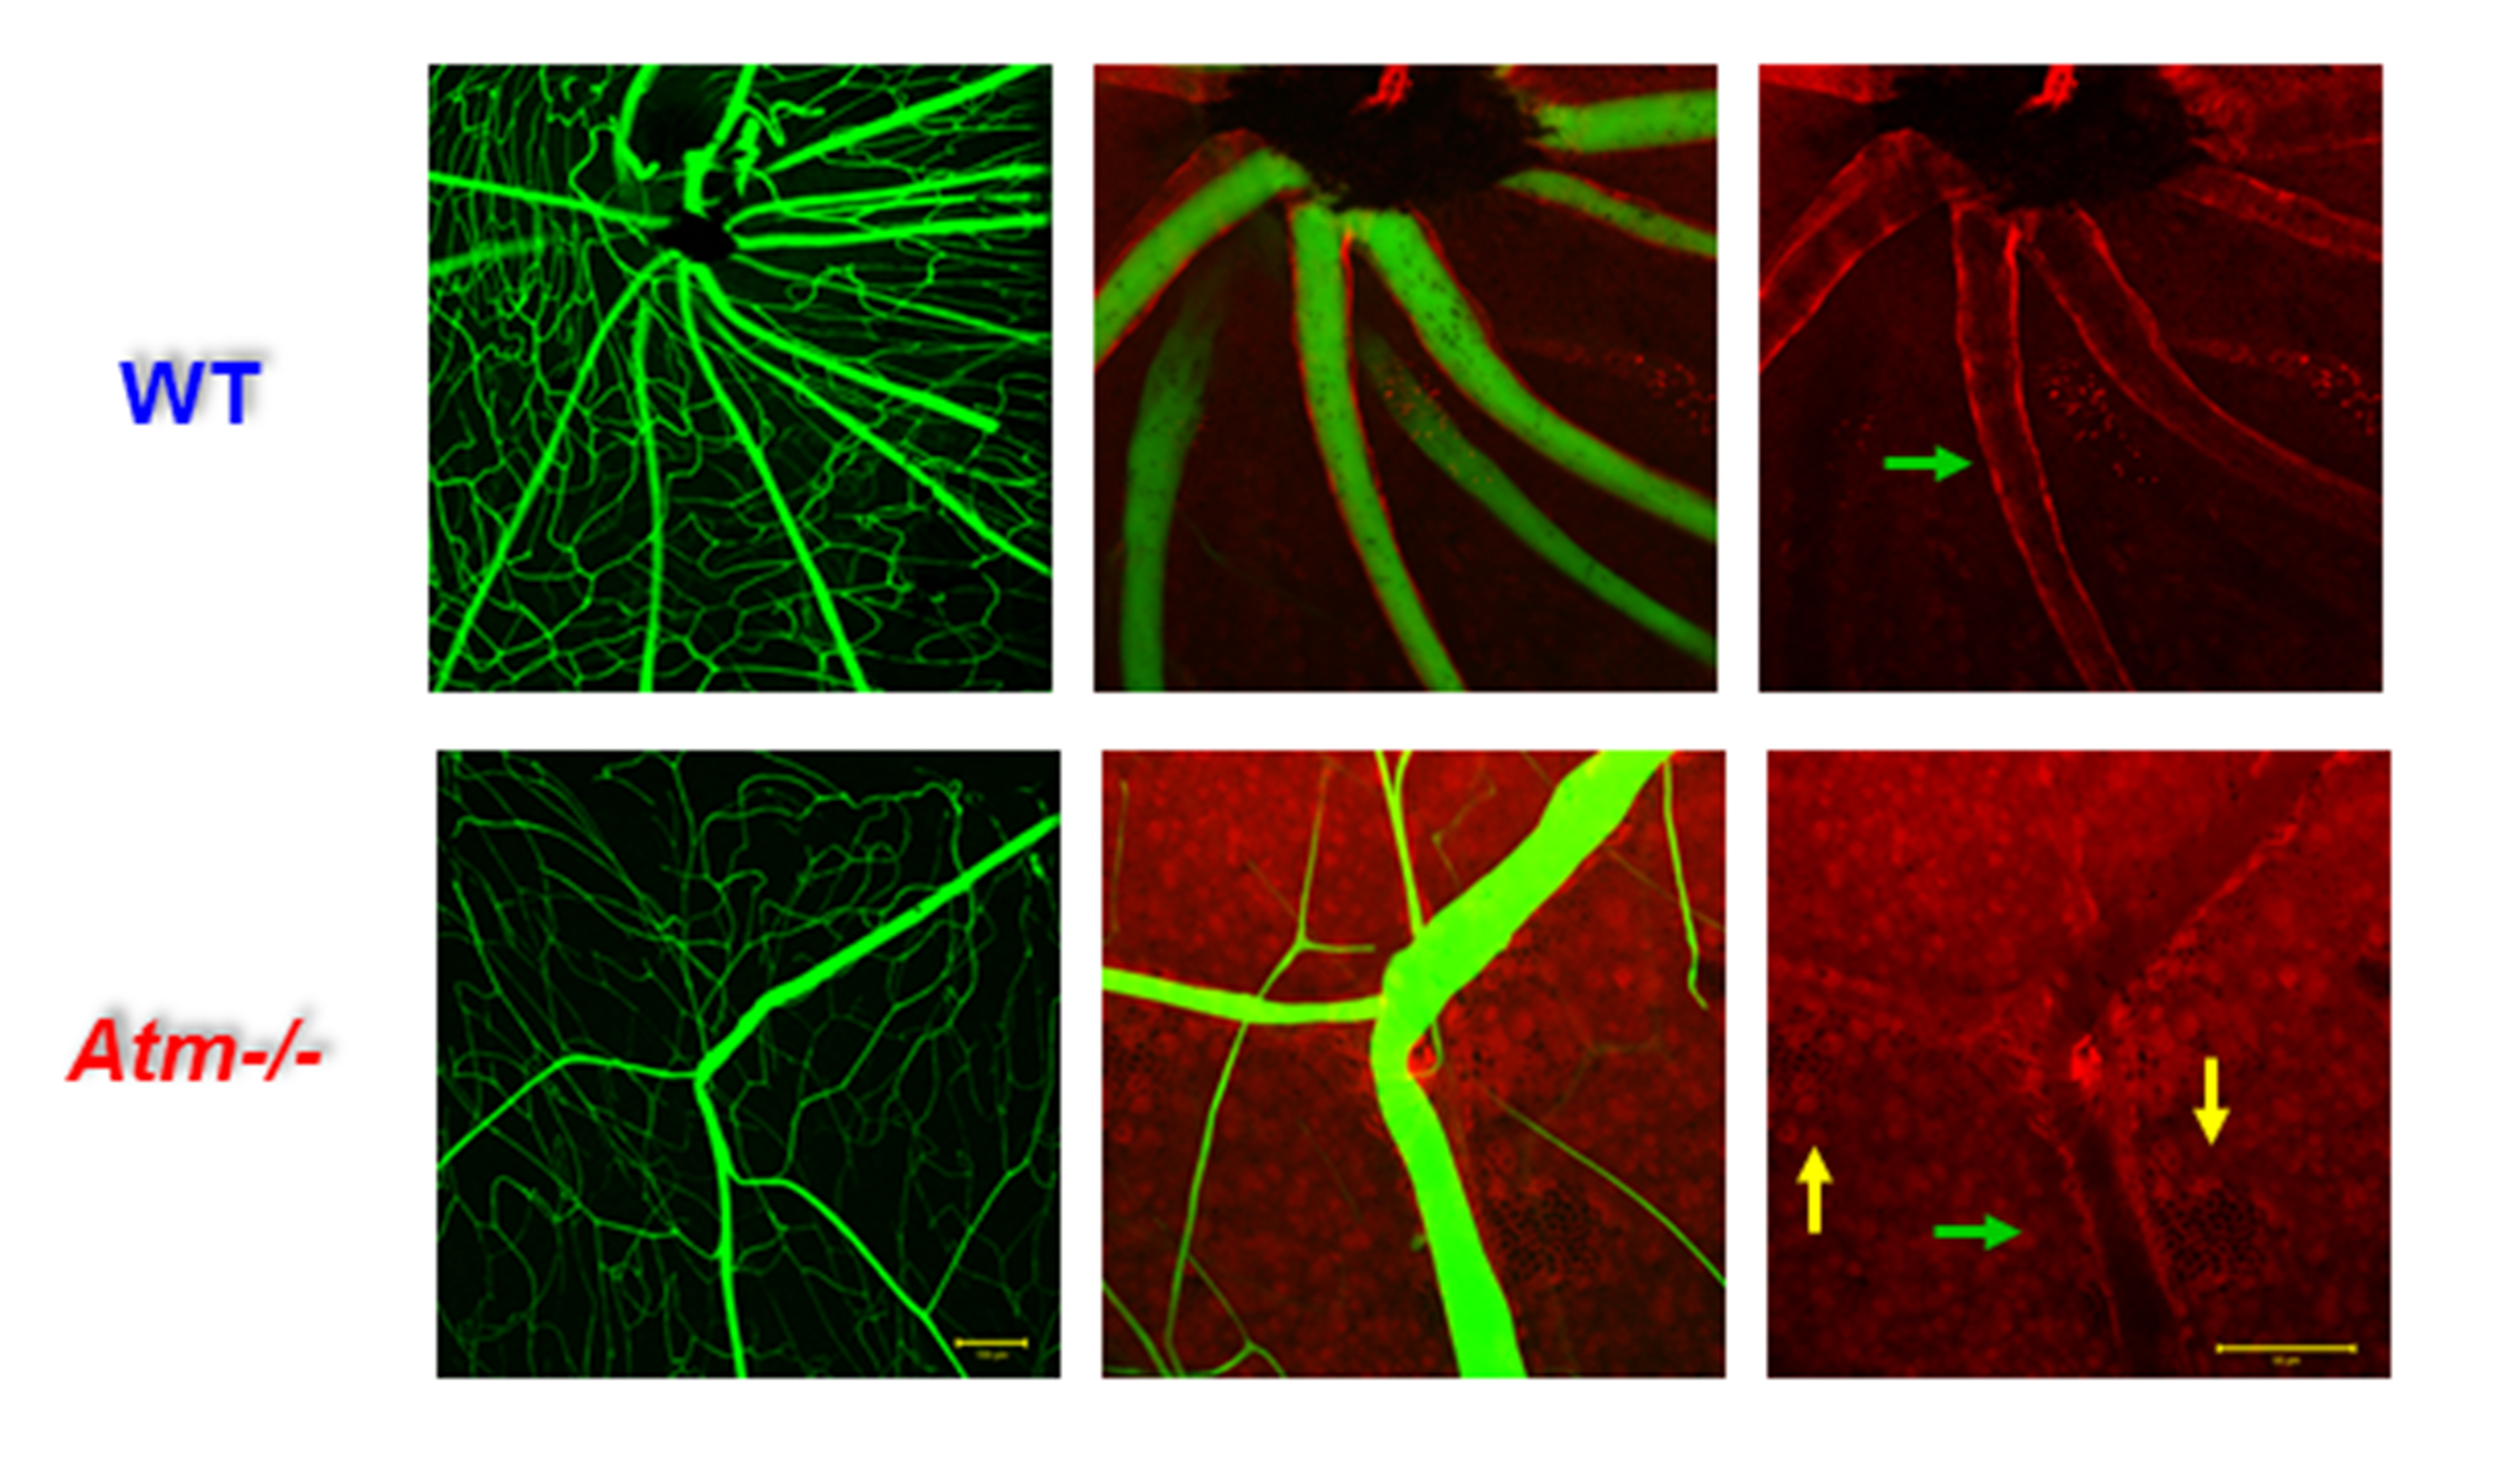 Figure 3. Attenuated blood vessels in retinas of ATM−/− mice. Flat-mount retinas of 2-month-old WT (left panel) and ATM−/− (right panel) mice imaged with a fluorescent microscope following intracardial perfusion with albumin-conjugated FITC albumin-conjugated FITC and Alexa 633 to selectively labelled the arteries. Constricted arteries are indicated by green arrows, and microhaemorrhages are indicated by yellow arrows